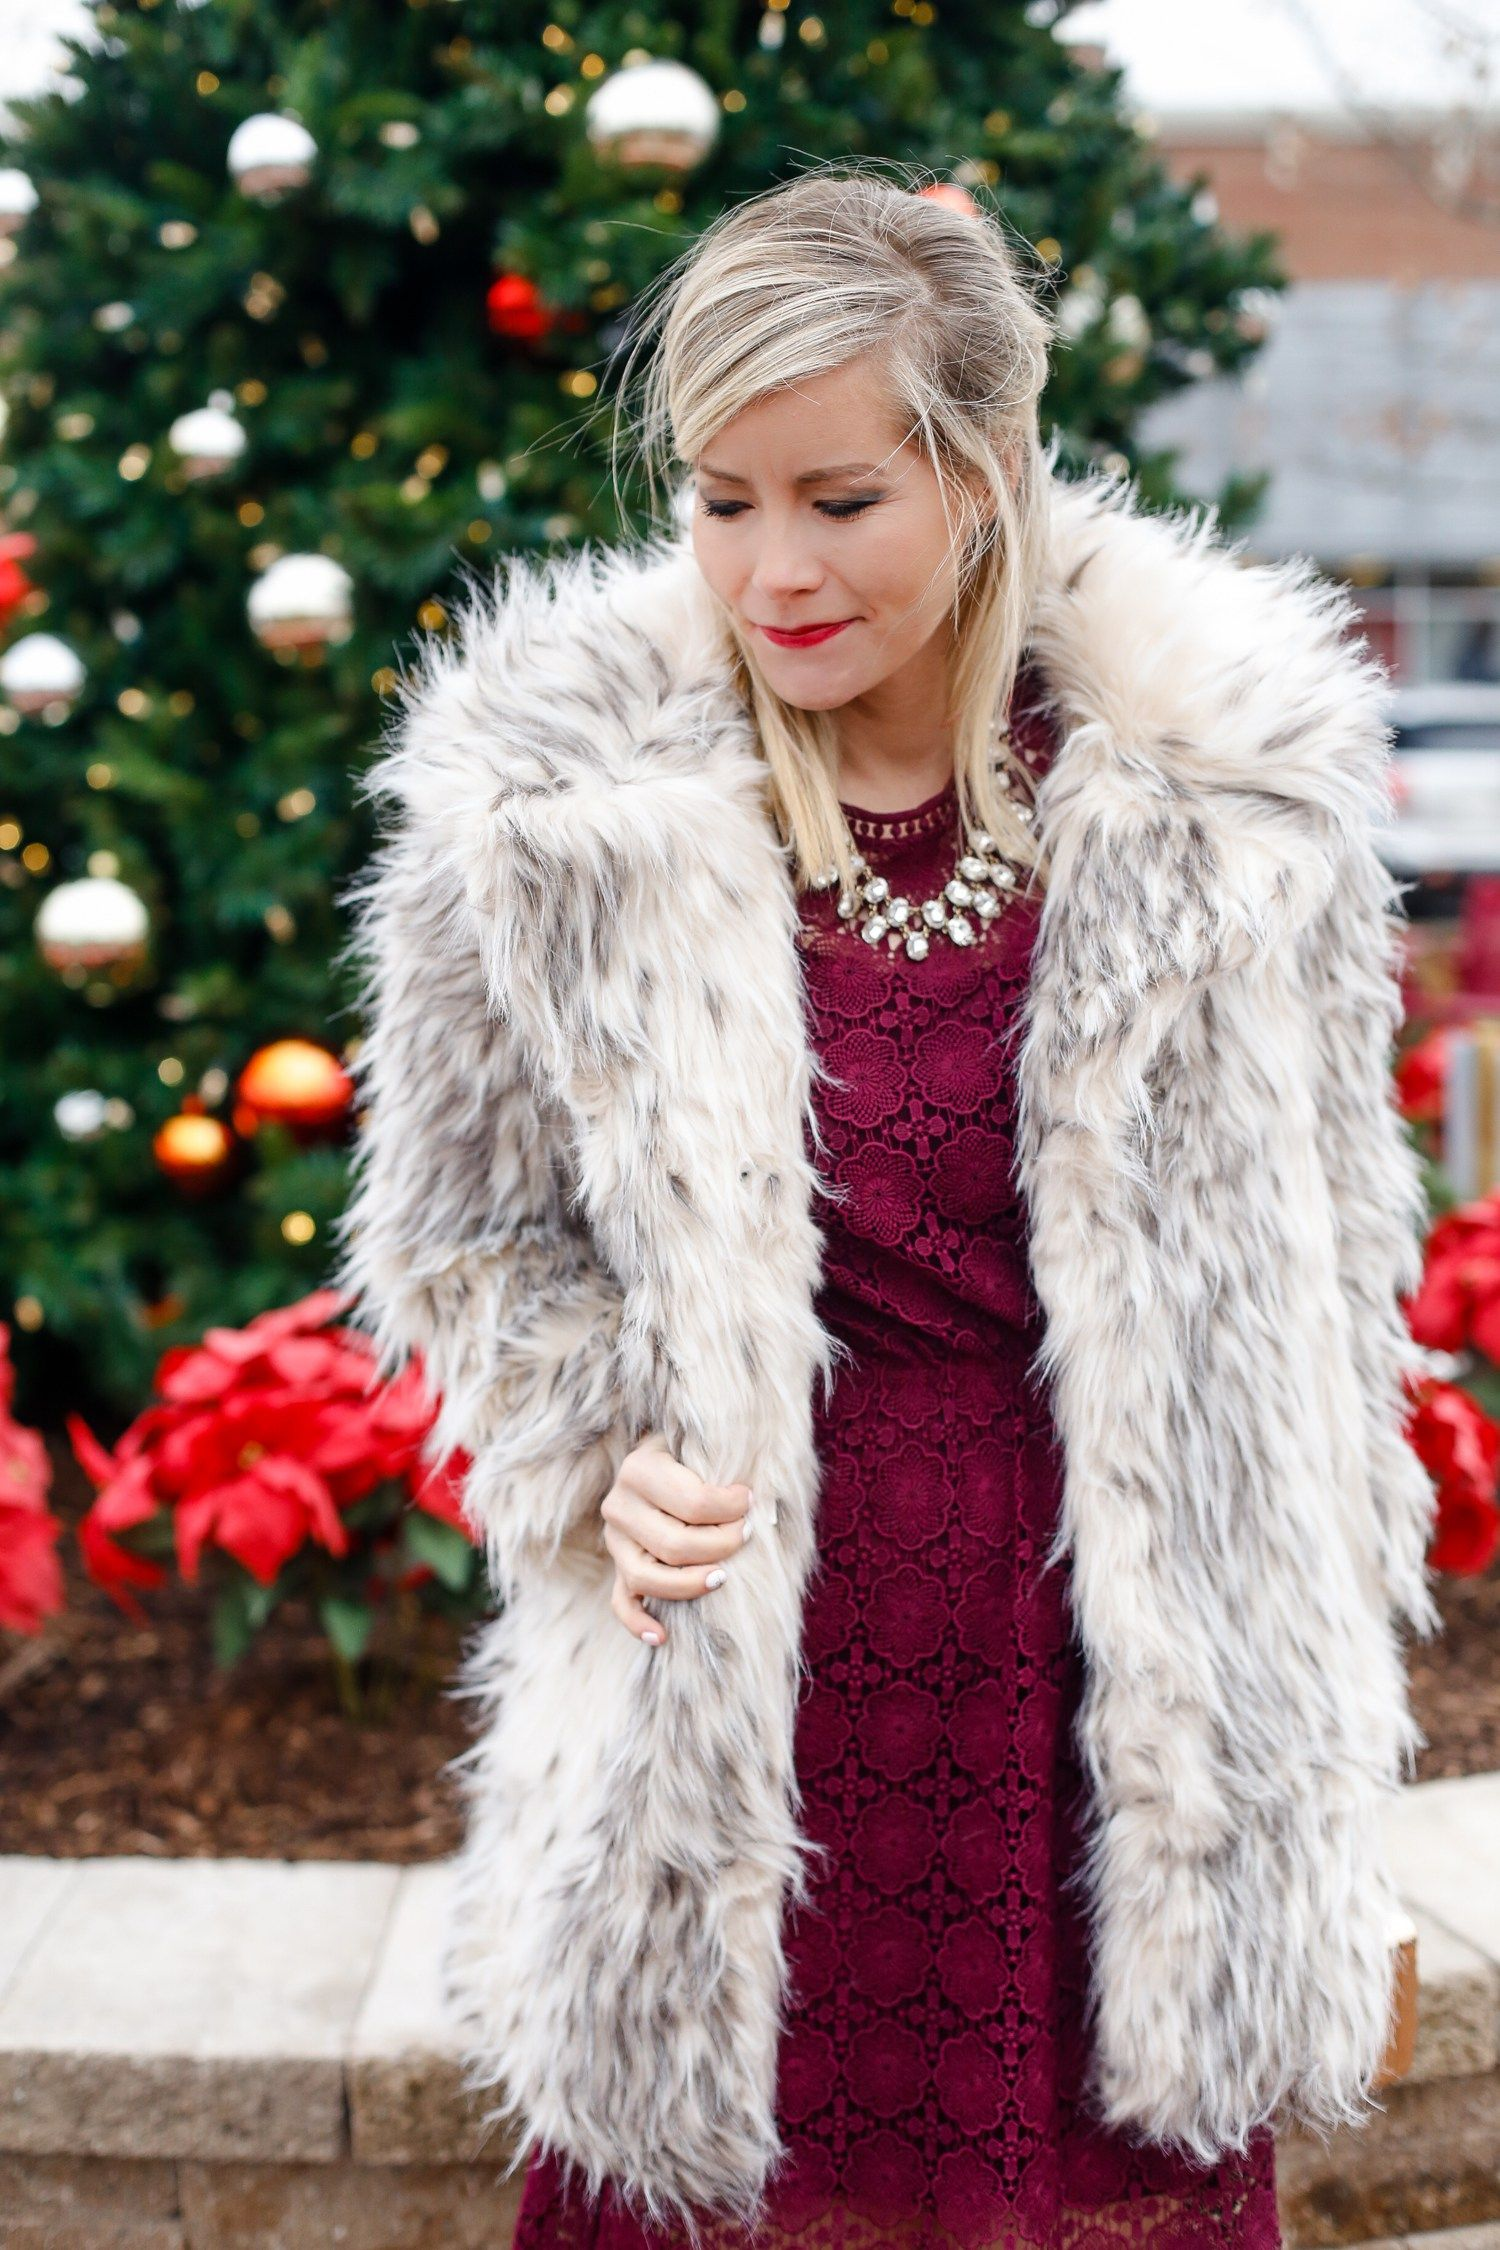 Holiday Glam Outfit Burgundy Dress Chicwish - Fashion Blog Afternoon Espresso